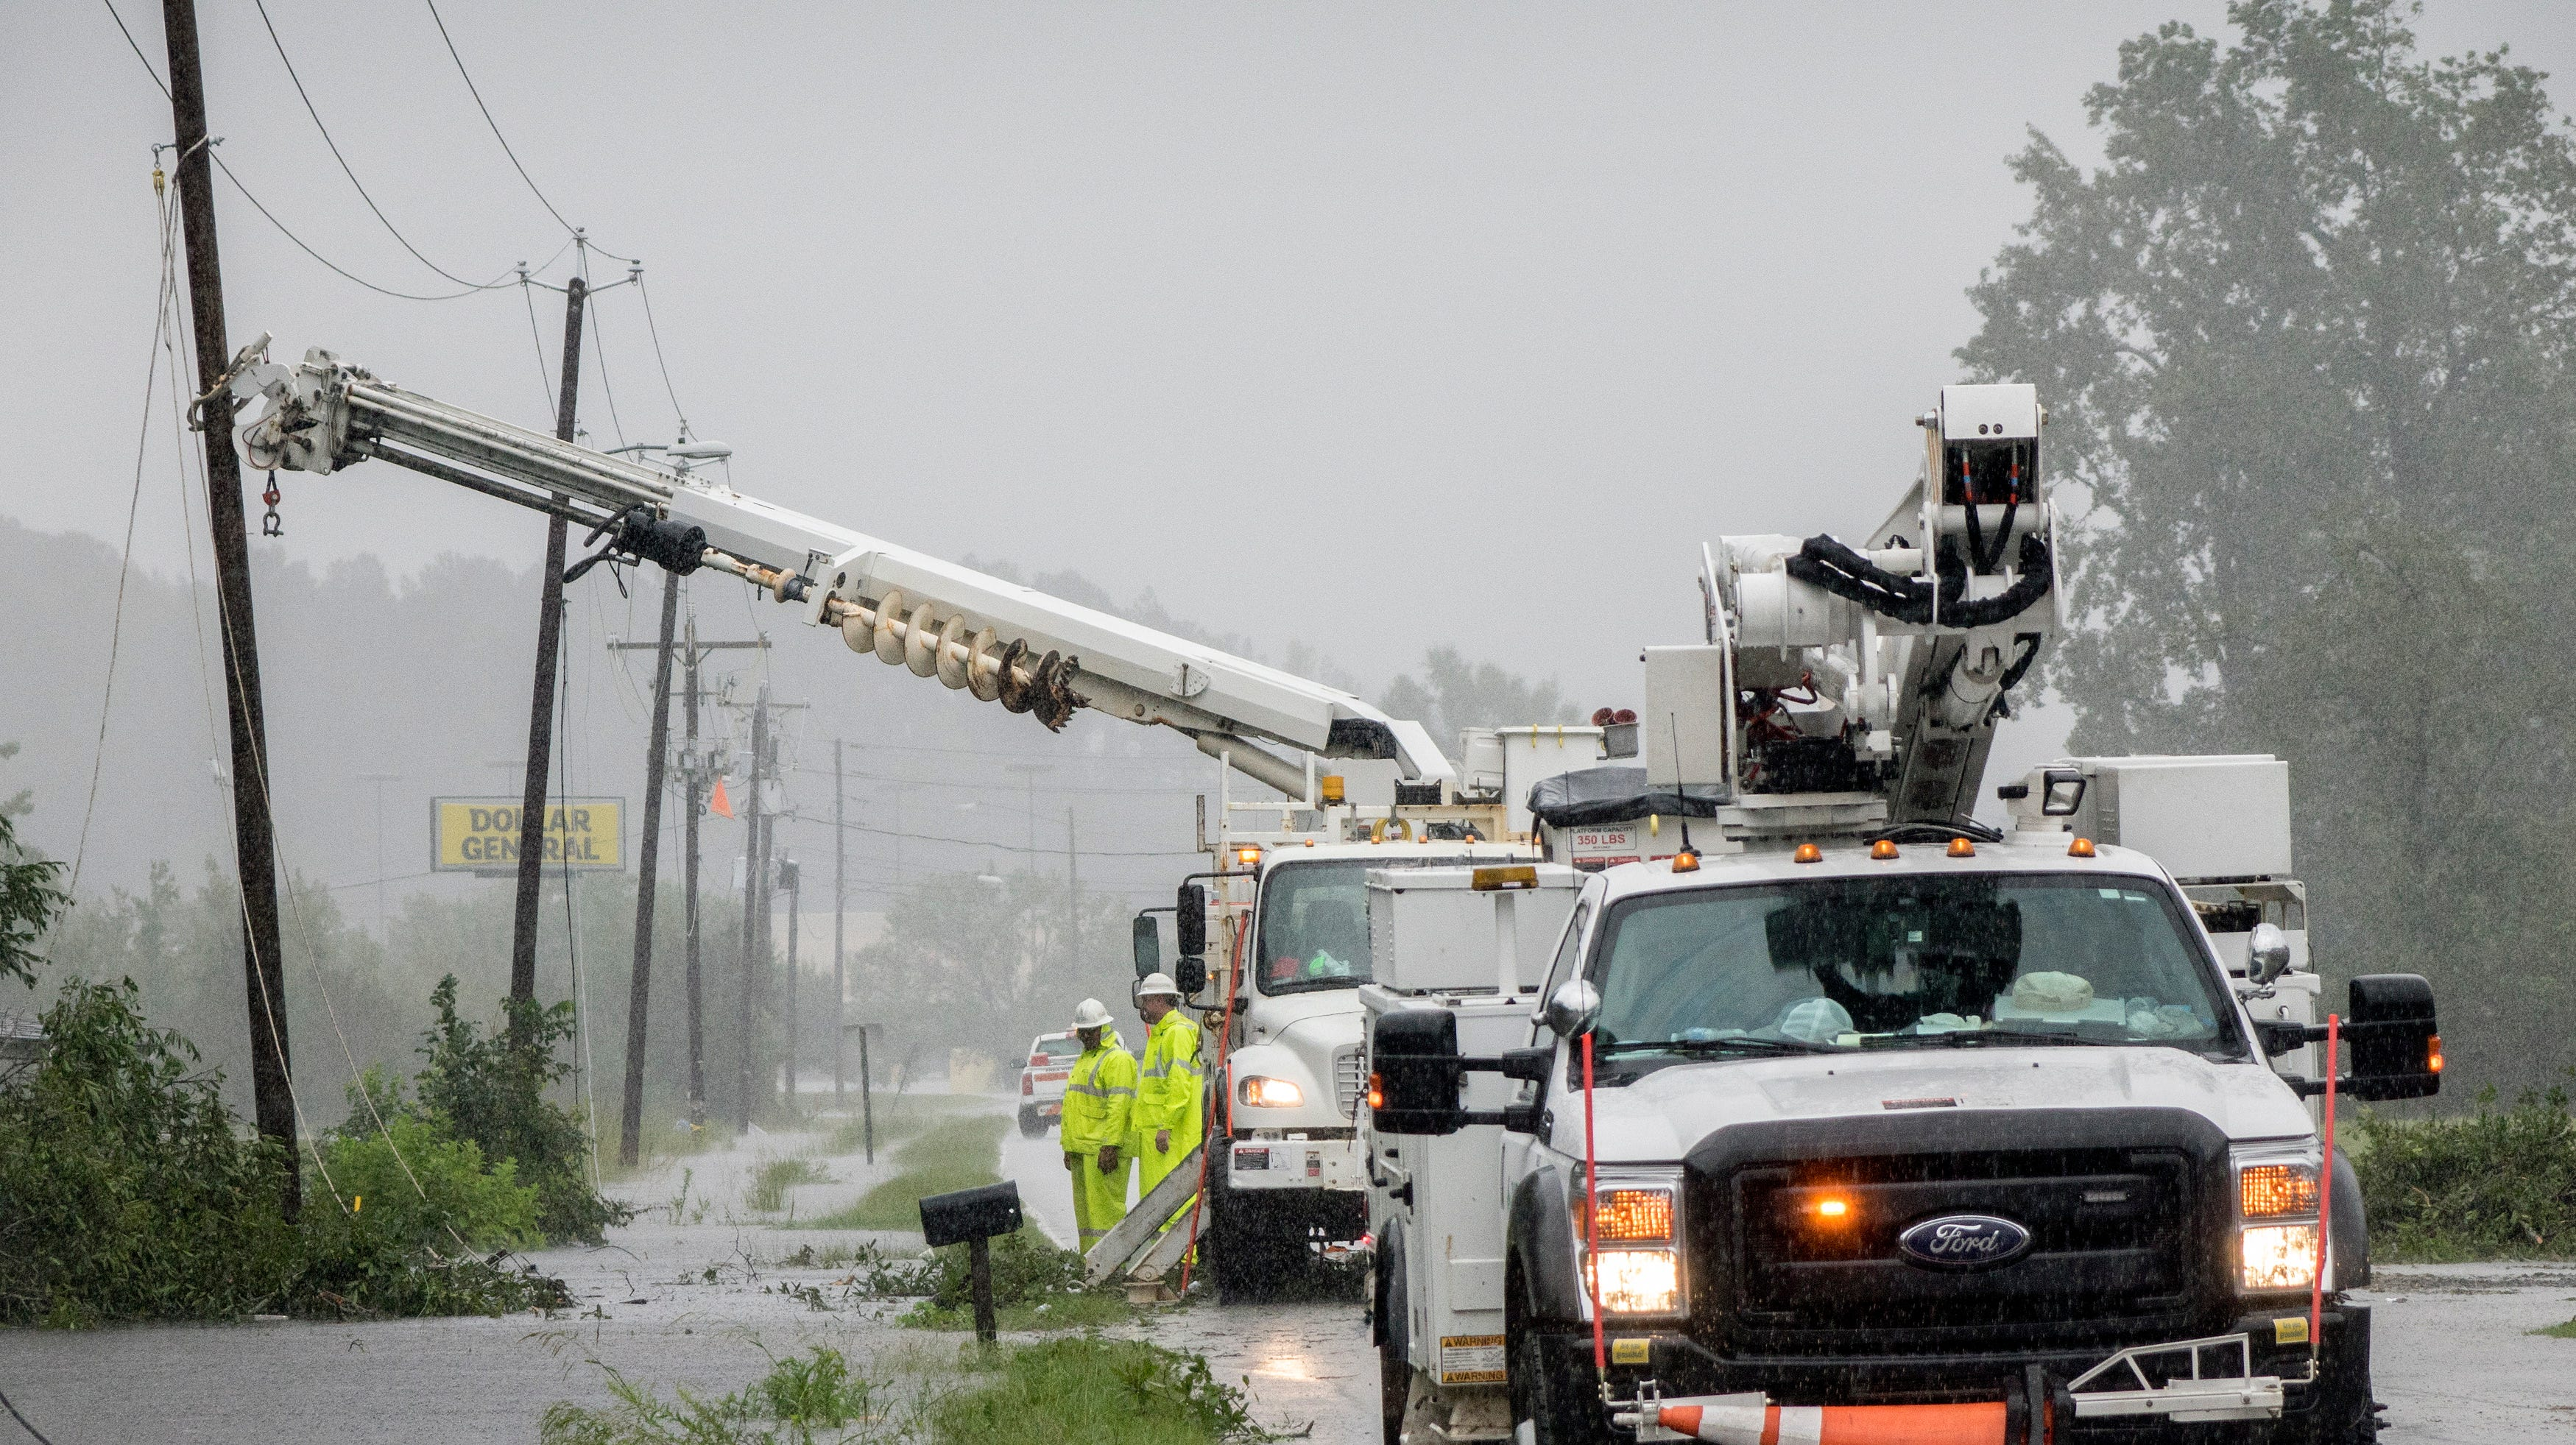 Extreme weather like Hurricane Florence shows we need clean, stable energy infrastructure